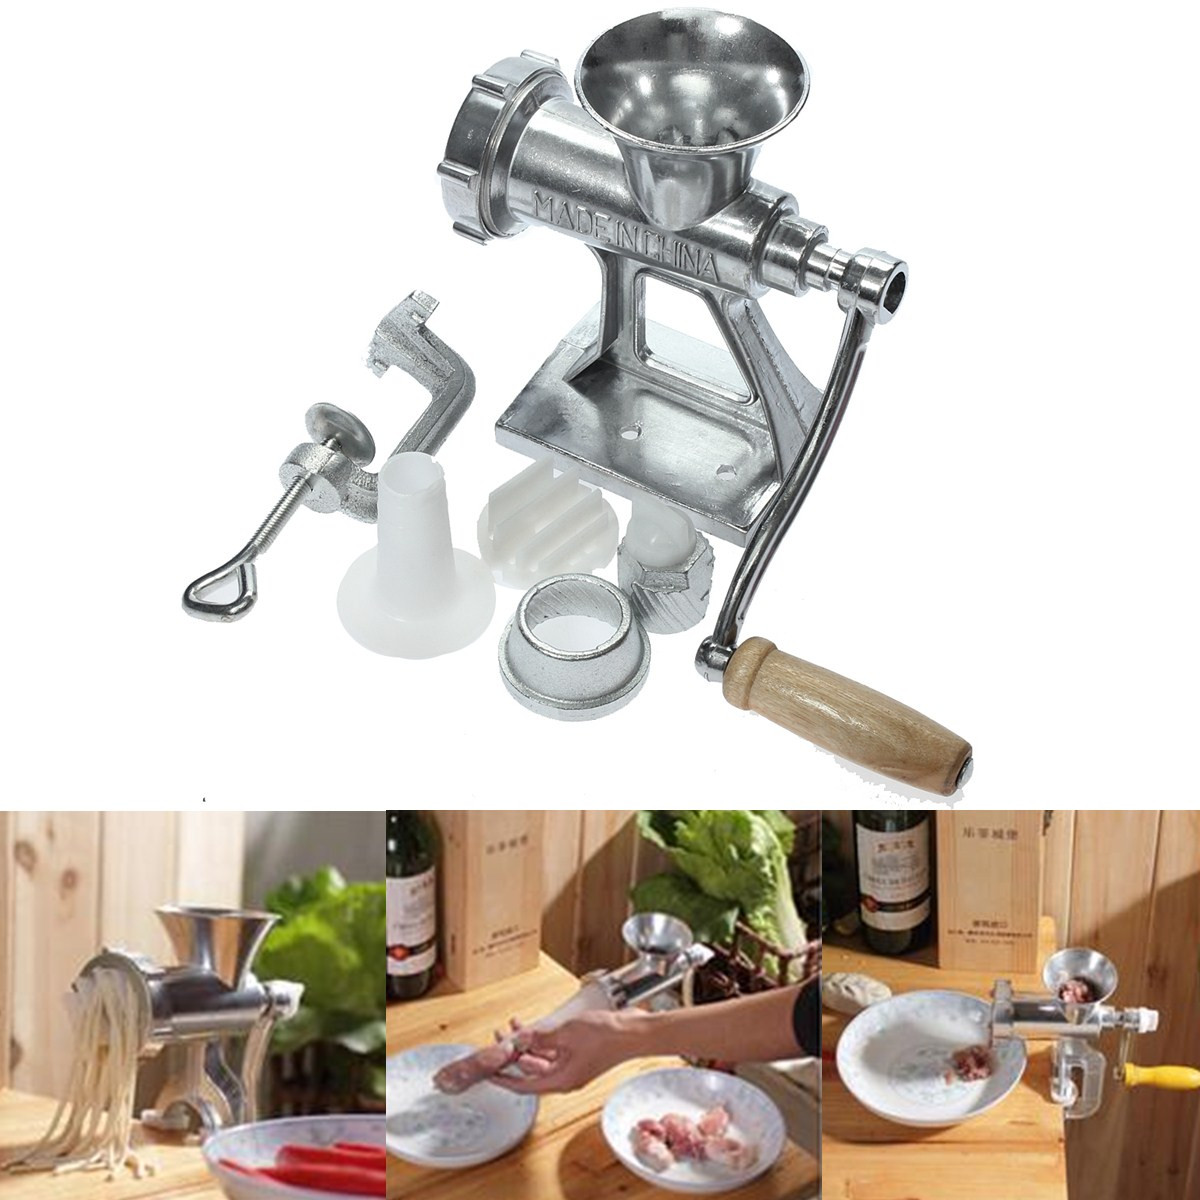 Meat Grinder For Sale >> Hot Sale Hand Operated Meat Grinder Cast Iron Heavy Duty Crank